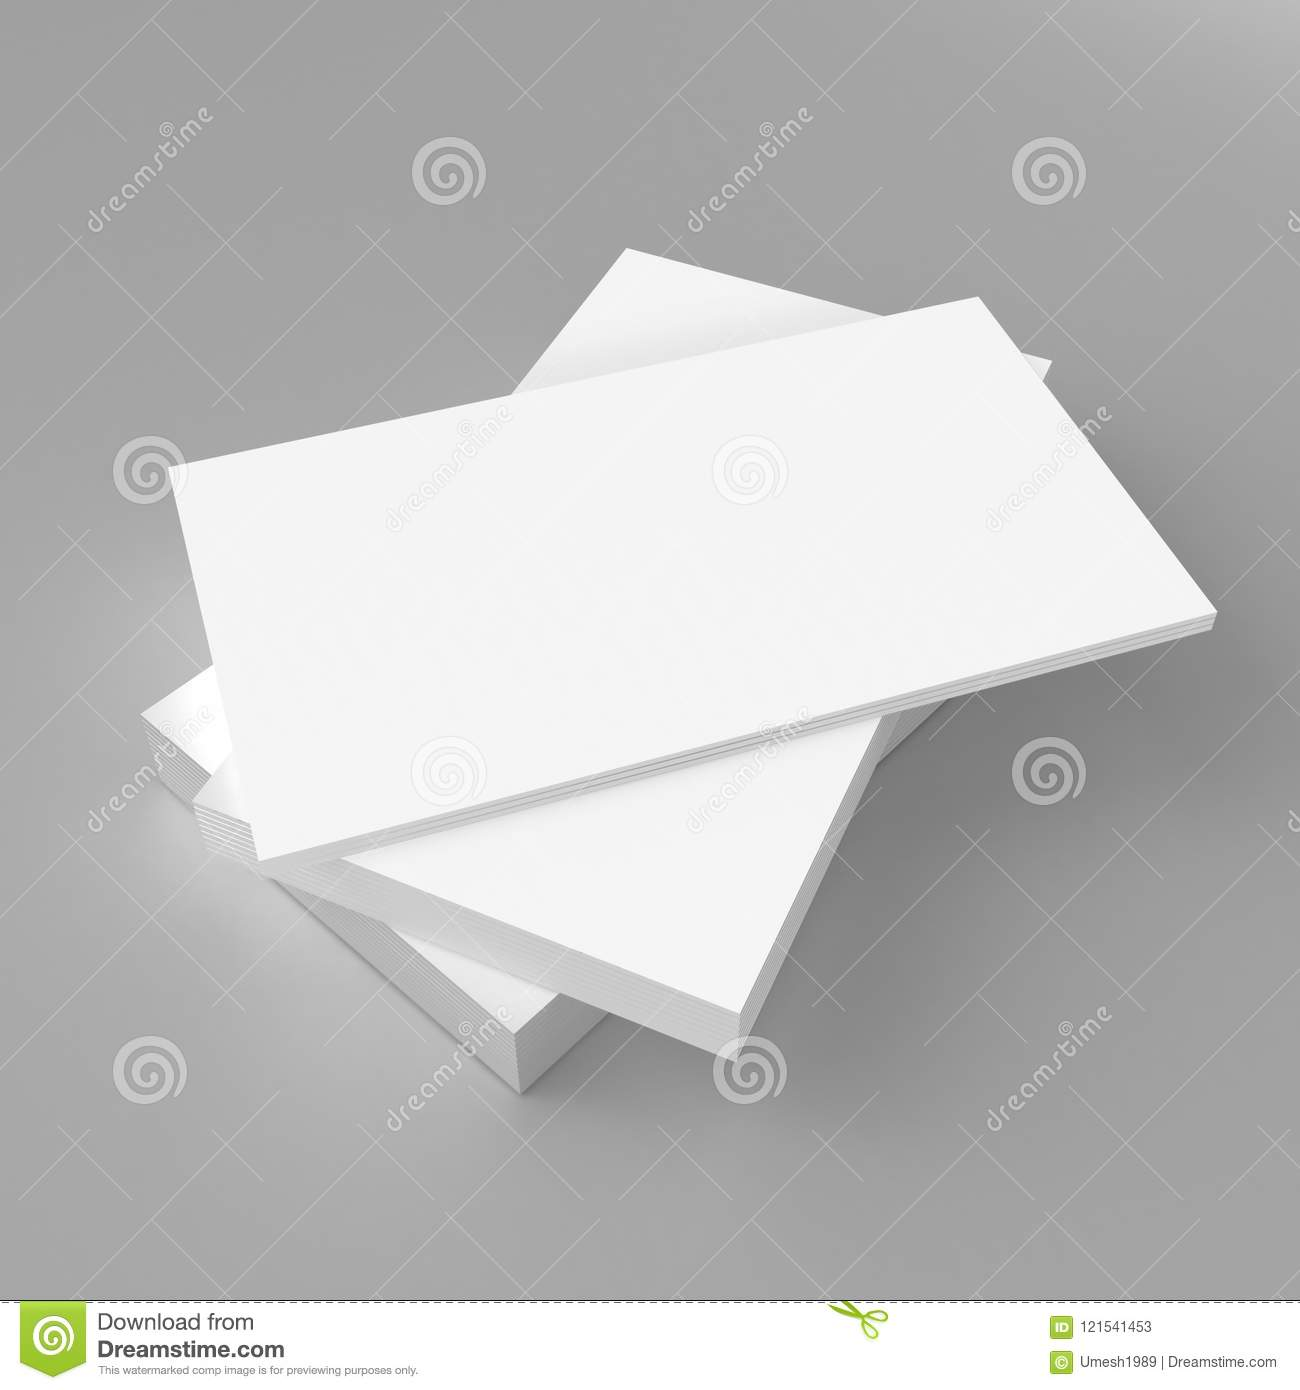 Blank white 3d visiting card template 3d render illustration for blank white 3d visiting card template 3d render illustration for mock up and design presentation wajeb Image collections